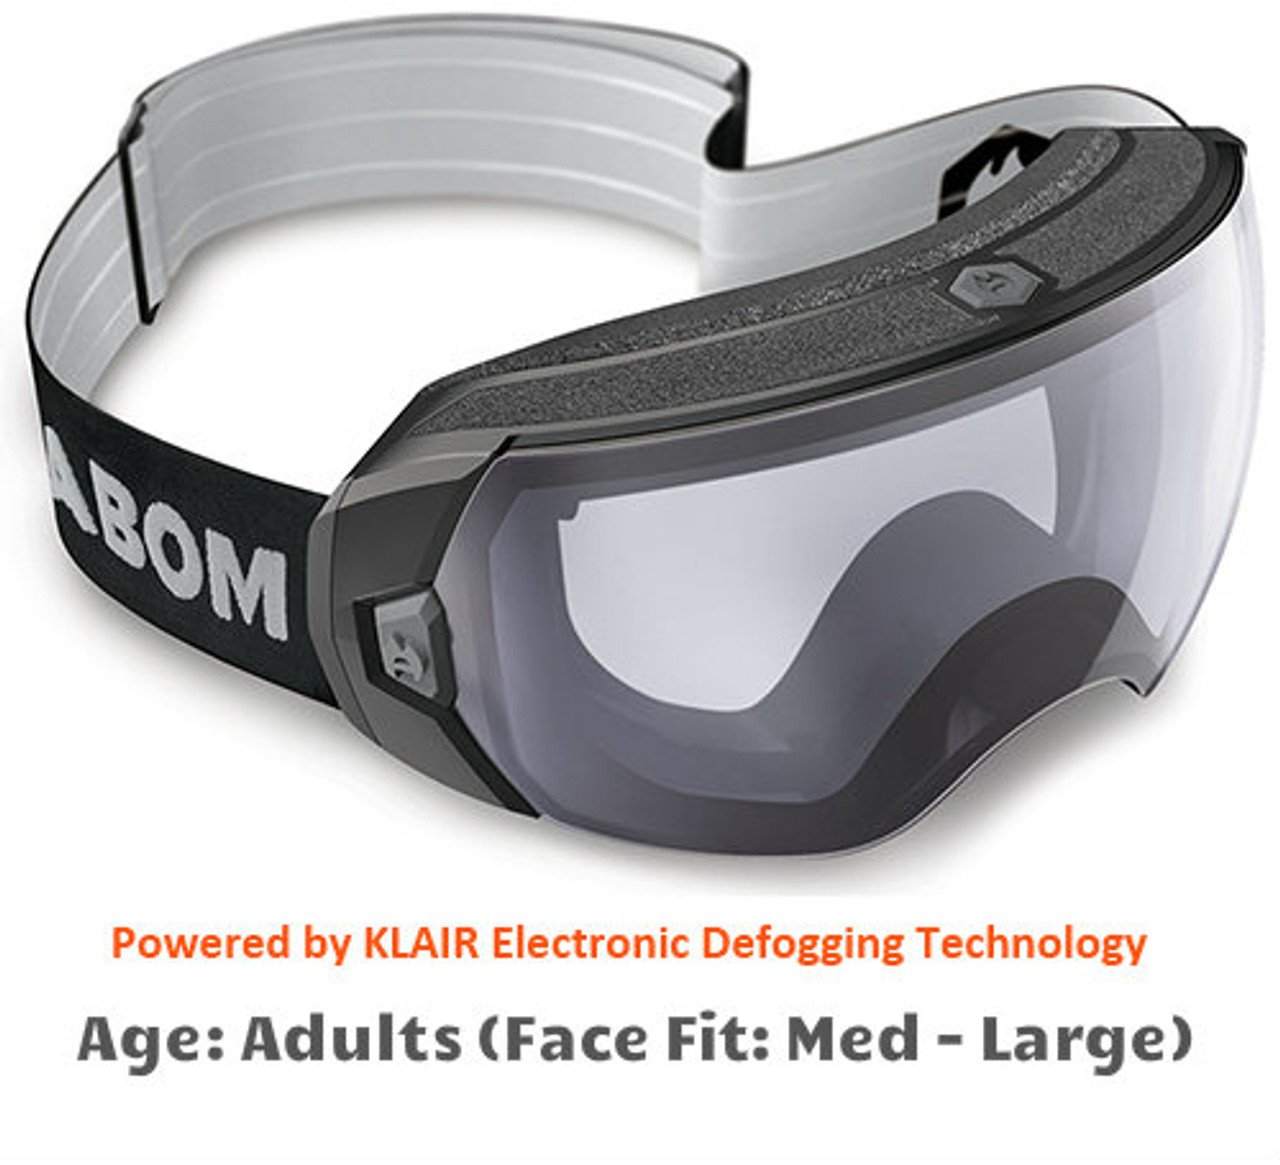 02c5d0b561f4 Abom Heet Clear Snow Goggles - Adult Sized Medium to Large Face Fit